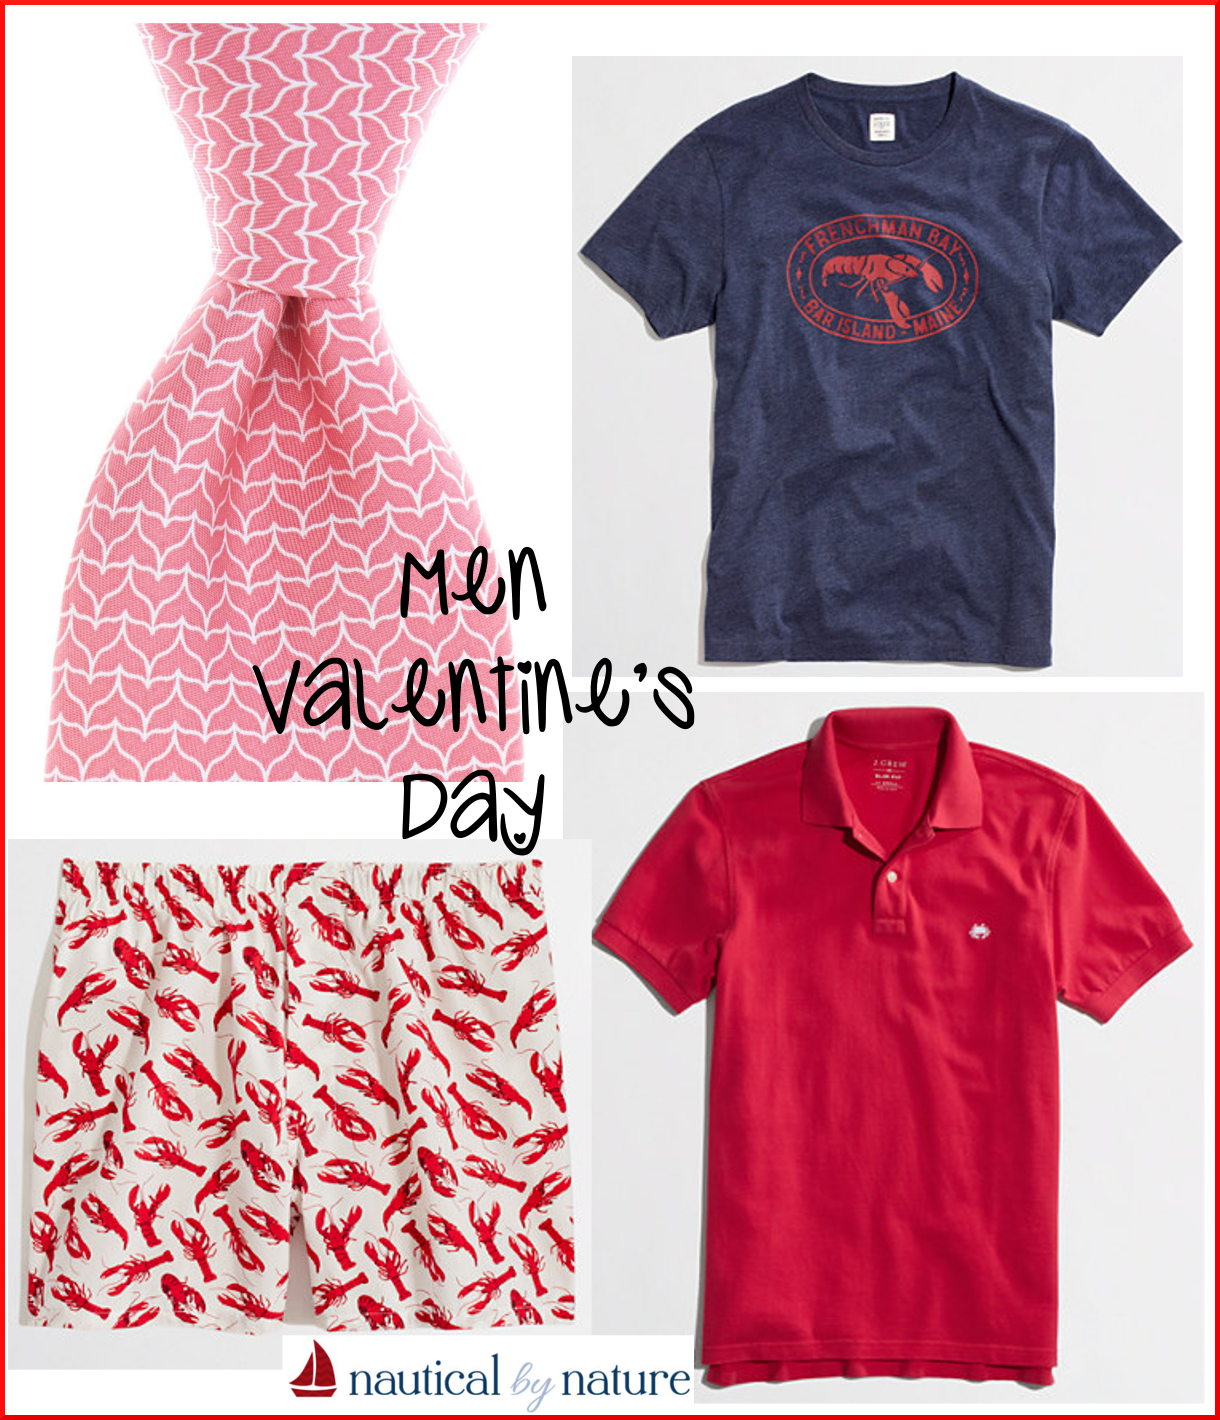 Nautical by Nature | Nautical Valentine's Day outfit ideas for men